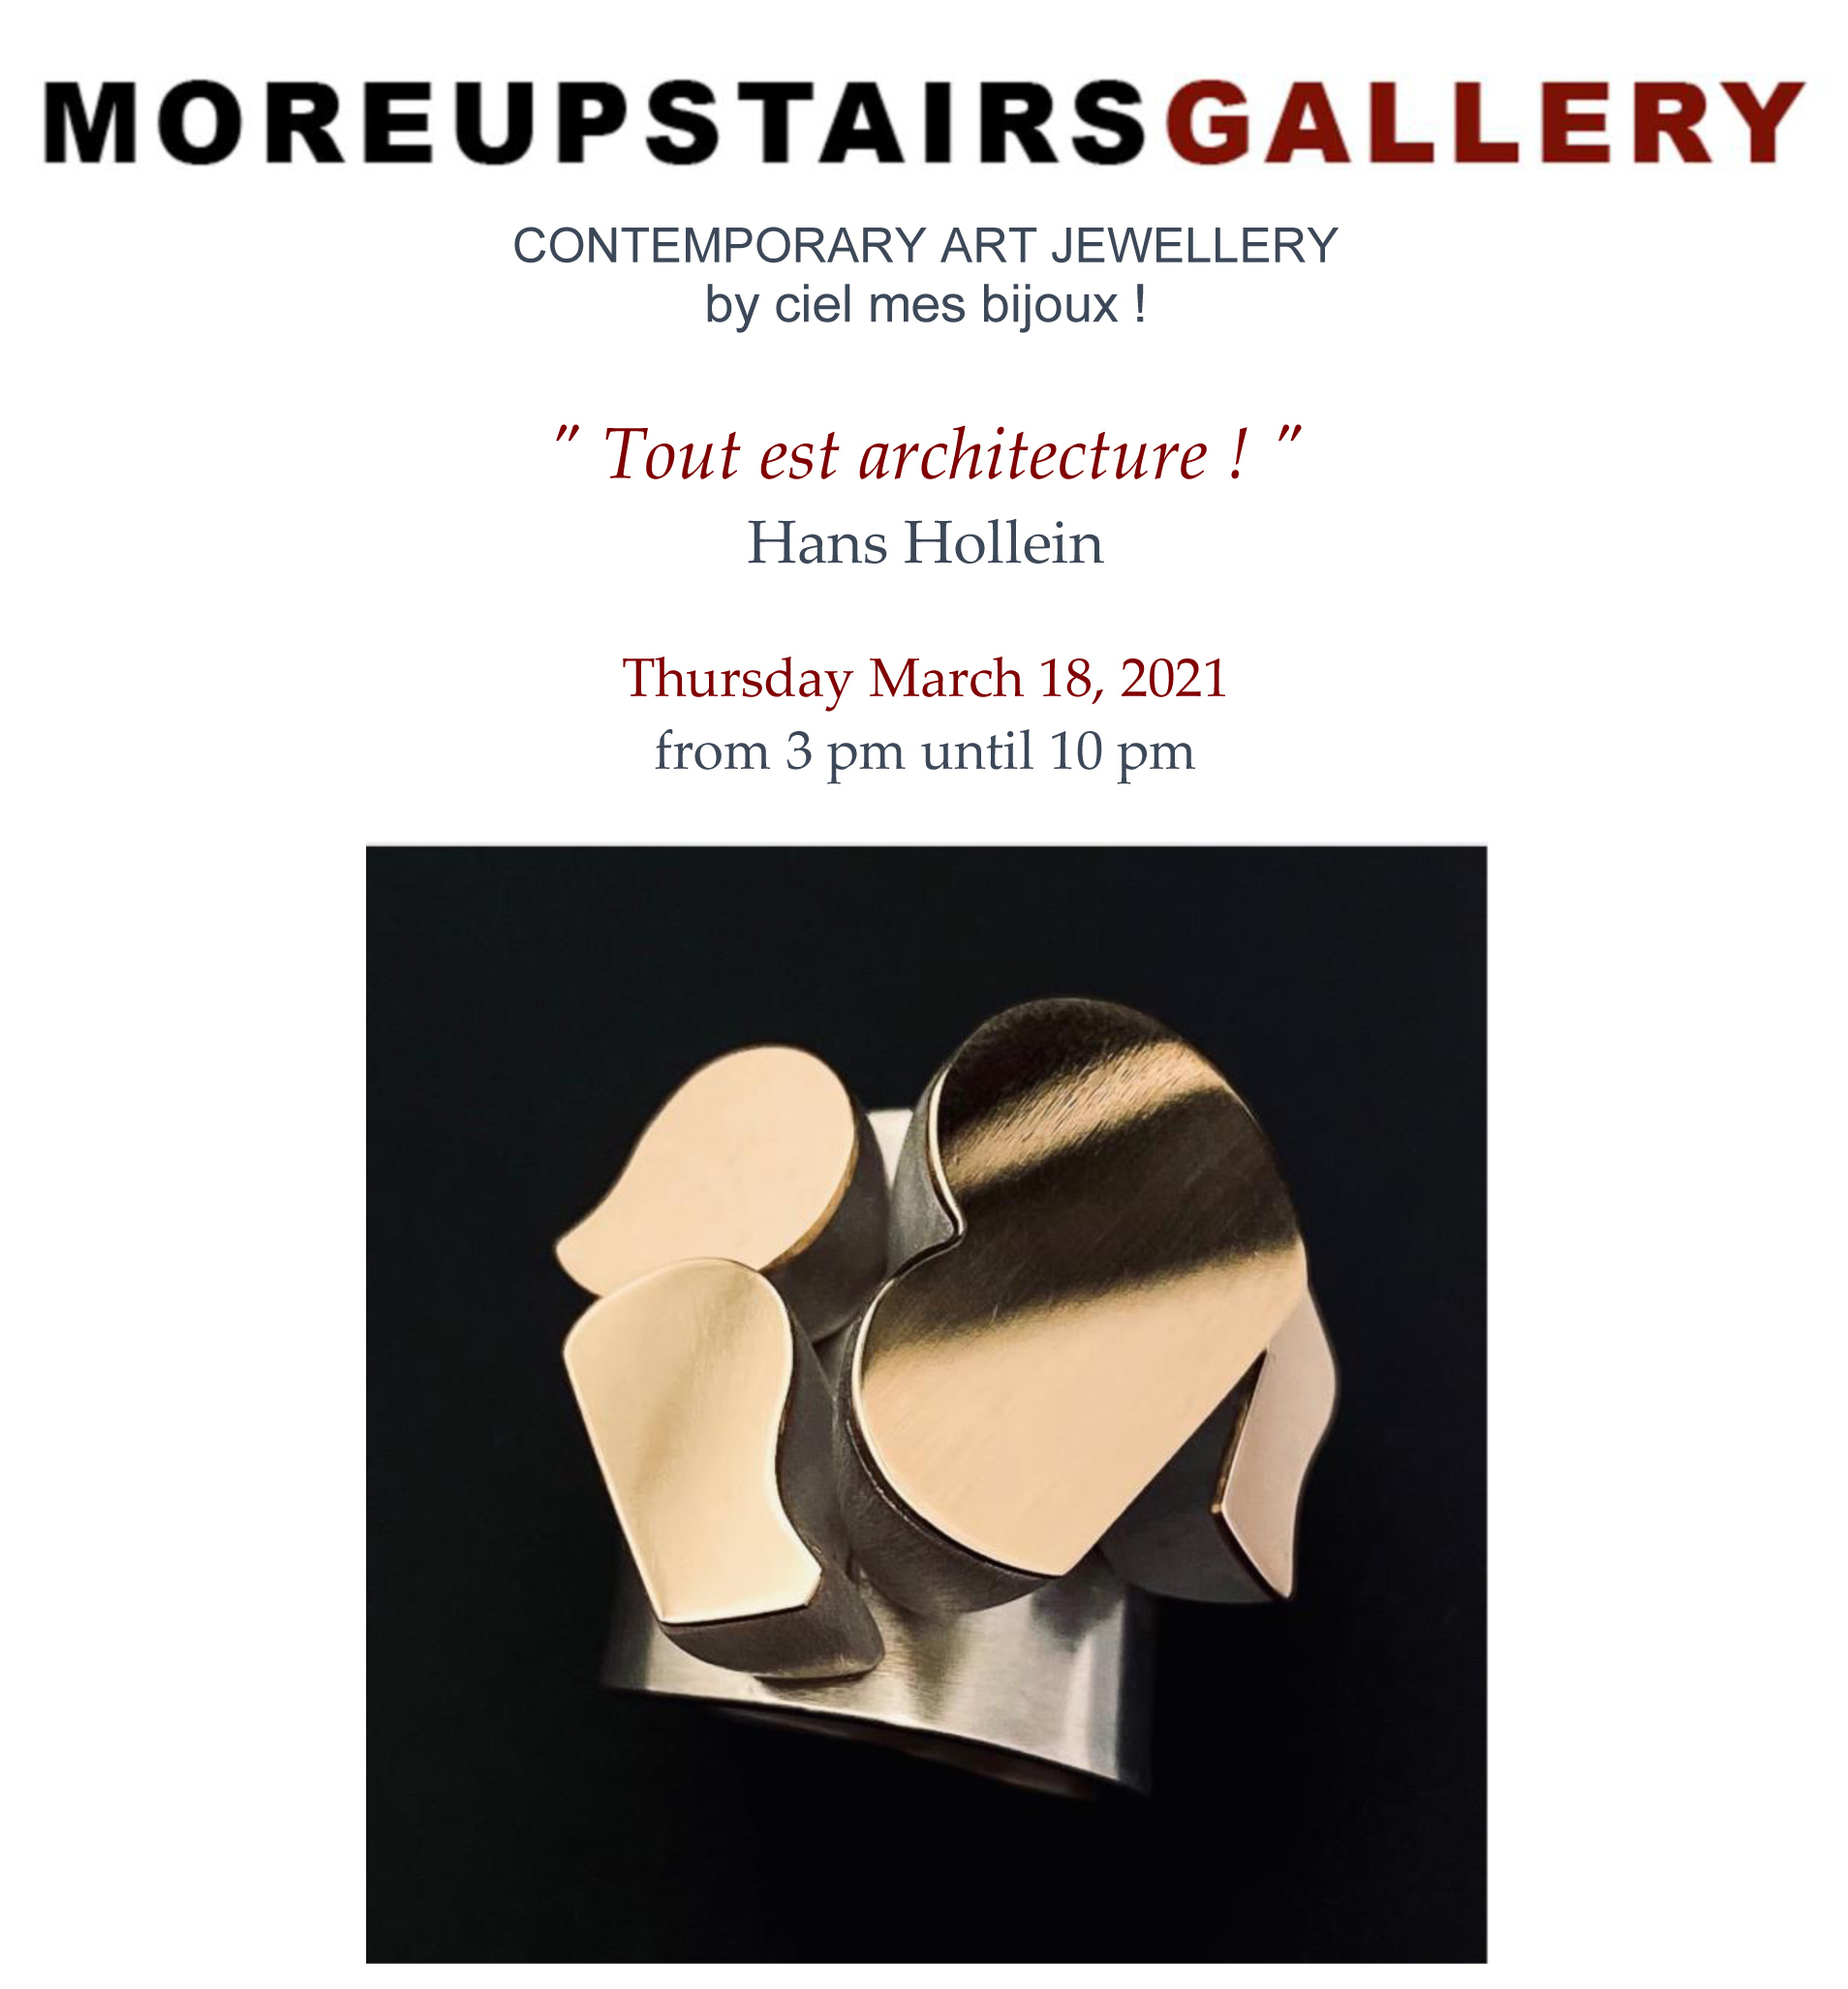 'Tout est architecture!' exposition Moreupstairs Gallery